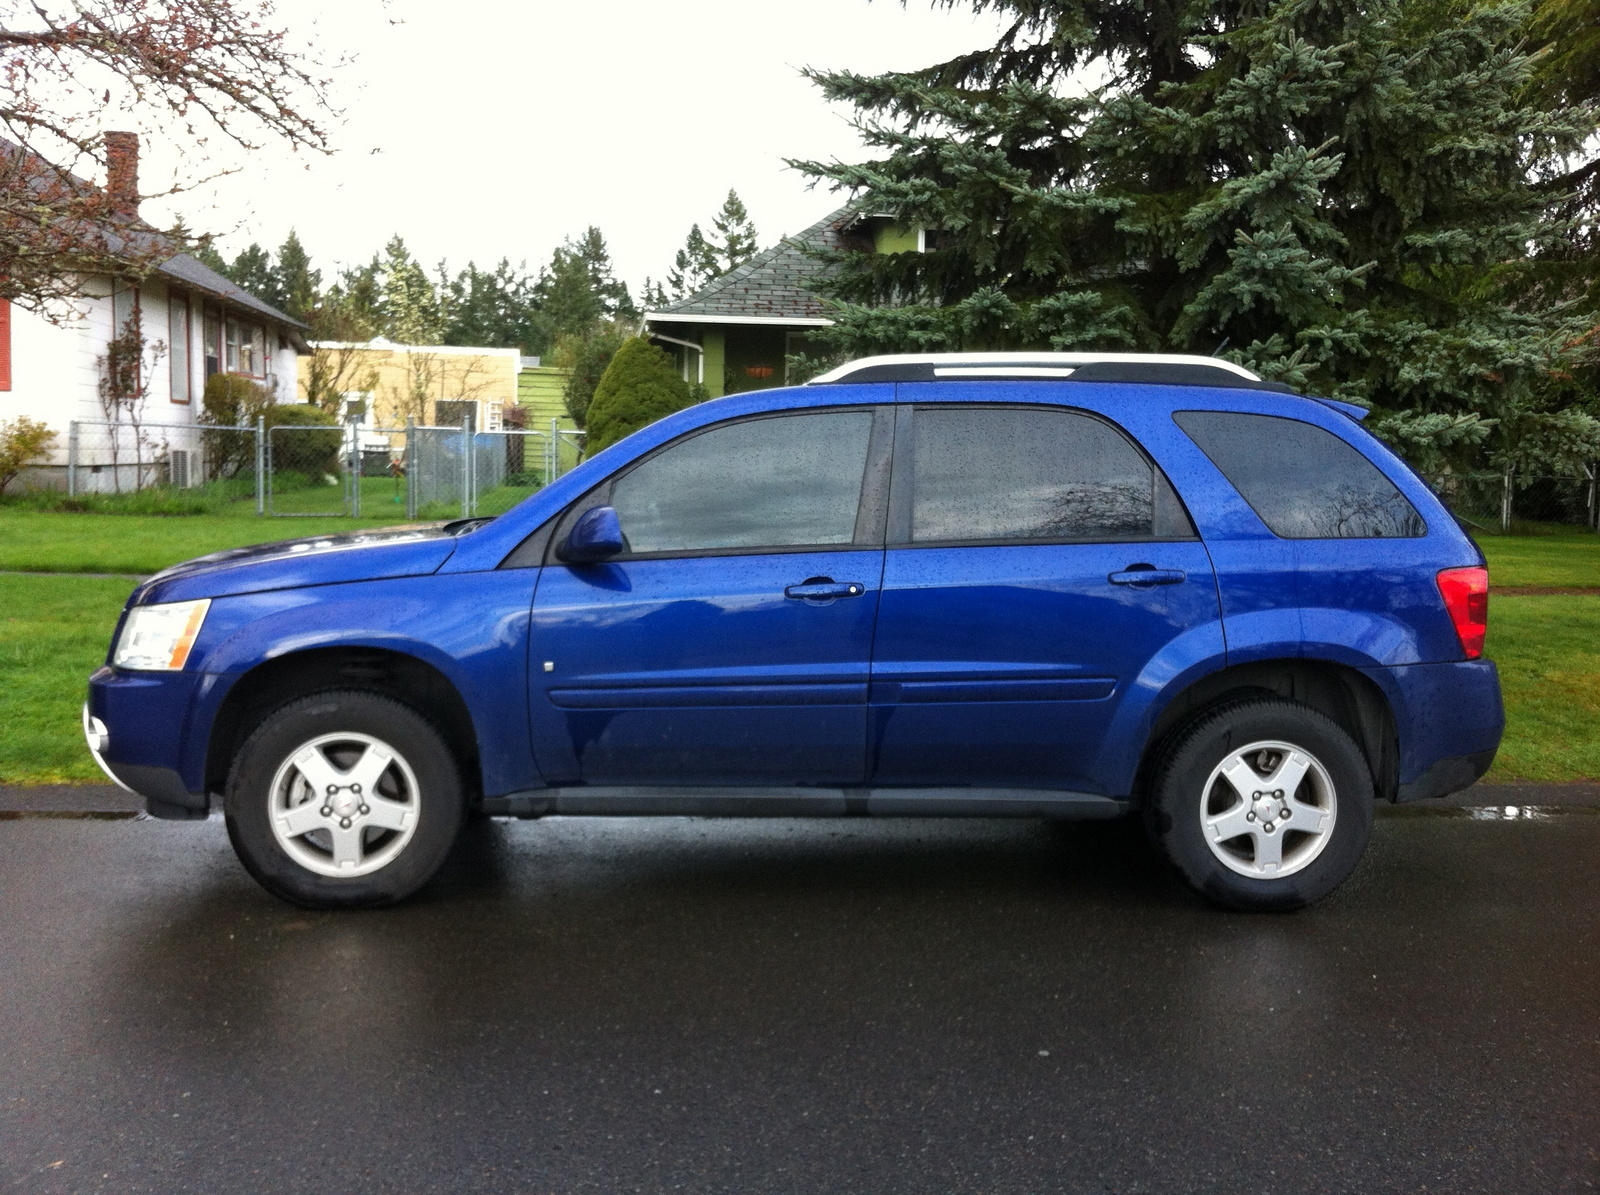 2007 Pontiac Torrent Exterior Pictures Cargurus